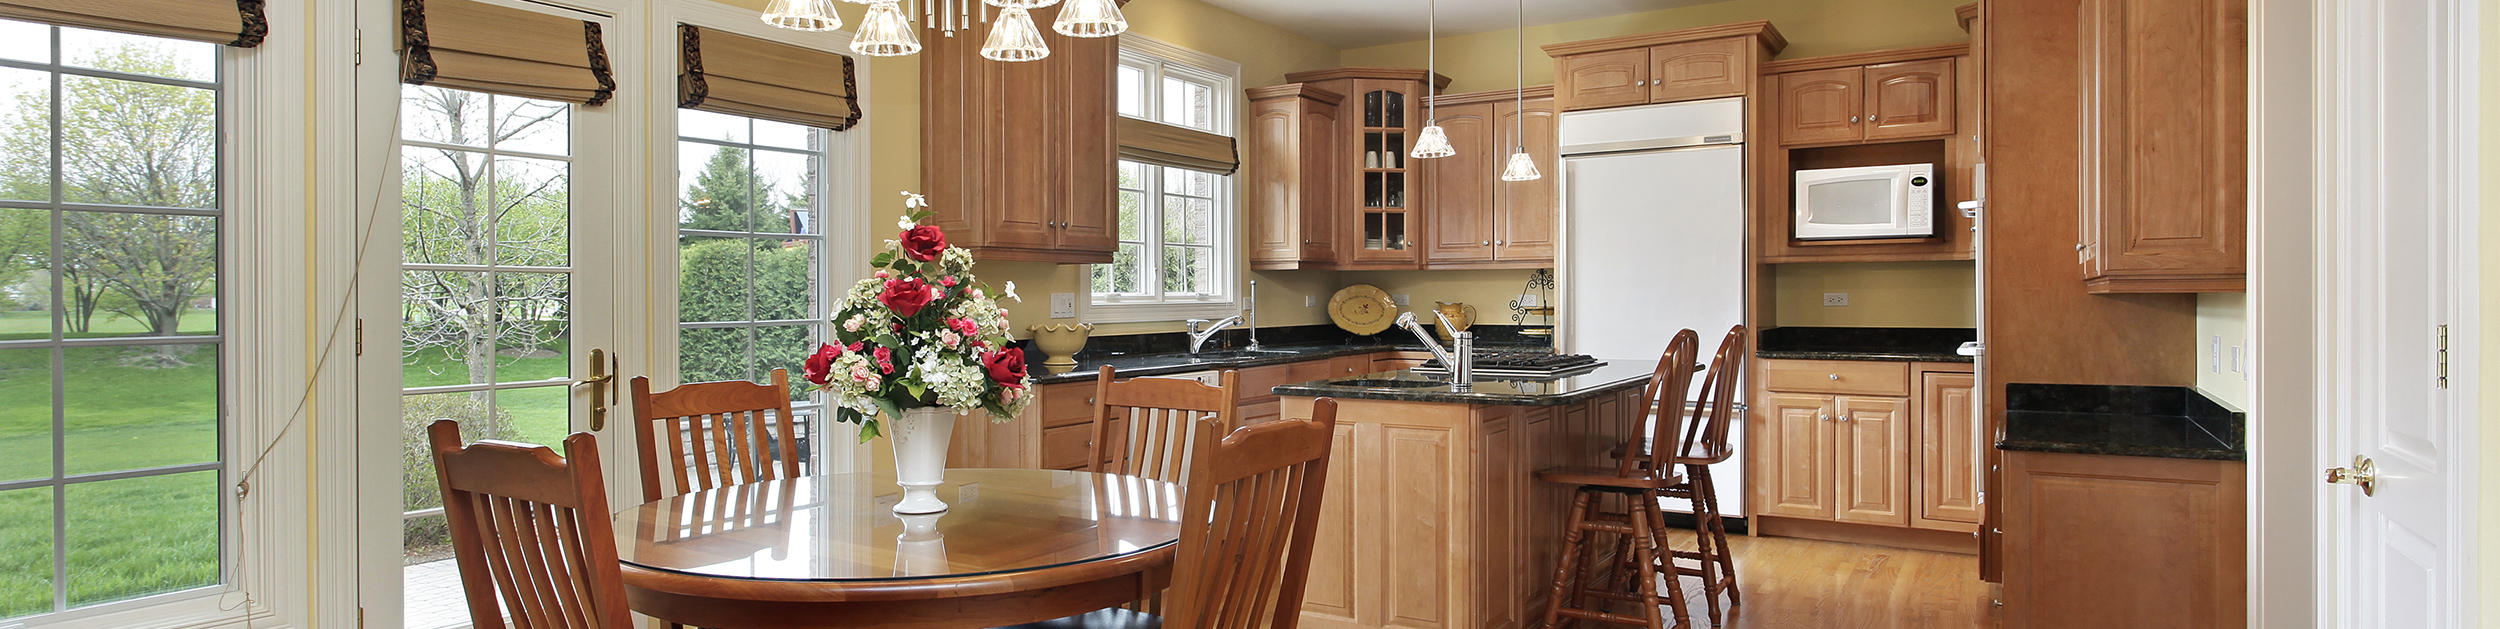 kitchen with light cabinets, dark granite and white appliances - also a kitchen table with a large vase of flowers